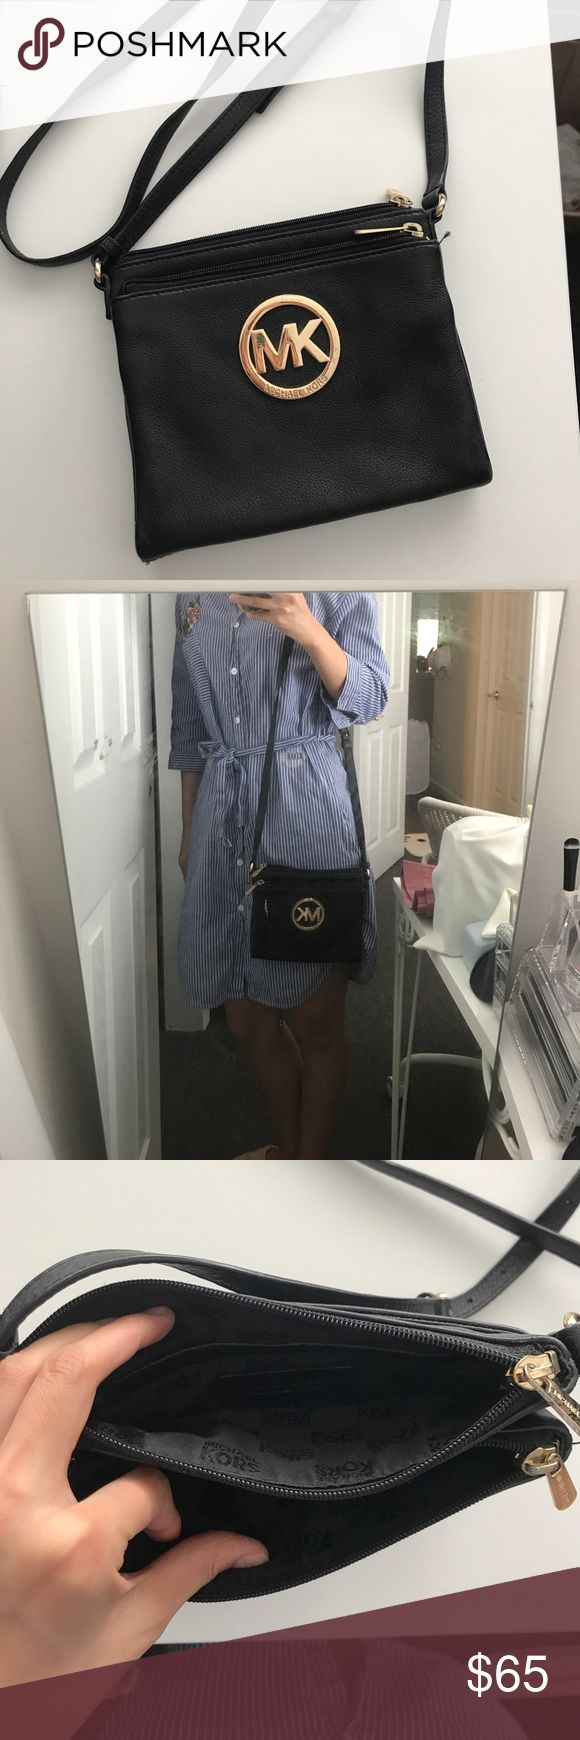 Michael Kors Leather Mini Shoulder Bag Classic design and color that could basically just go well with any kind of outfit or circumstances. Authentic Michael Kors. NO SCRATCH AT ALL Michael Kors Bags Mini Bags